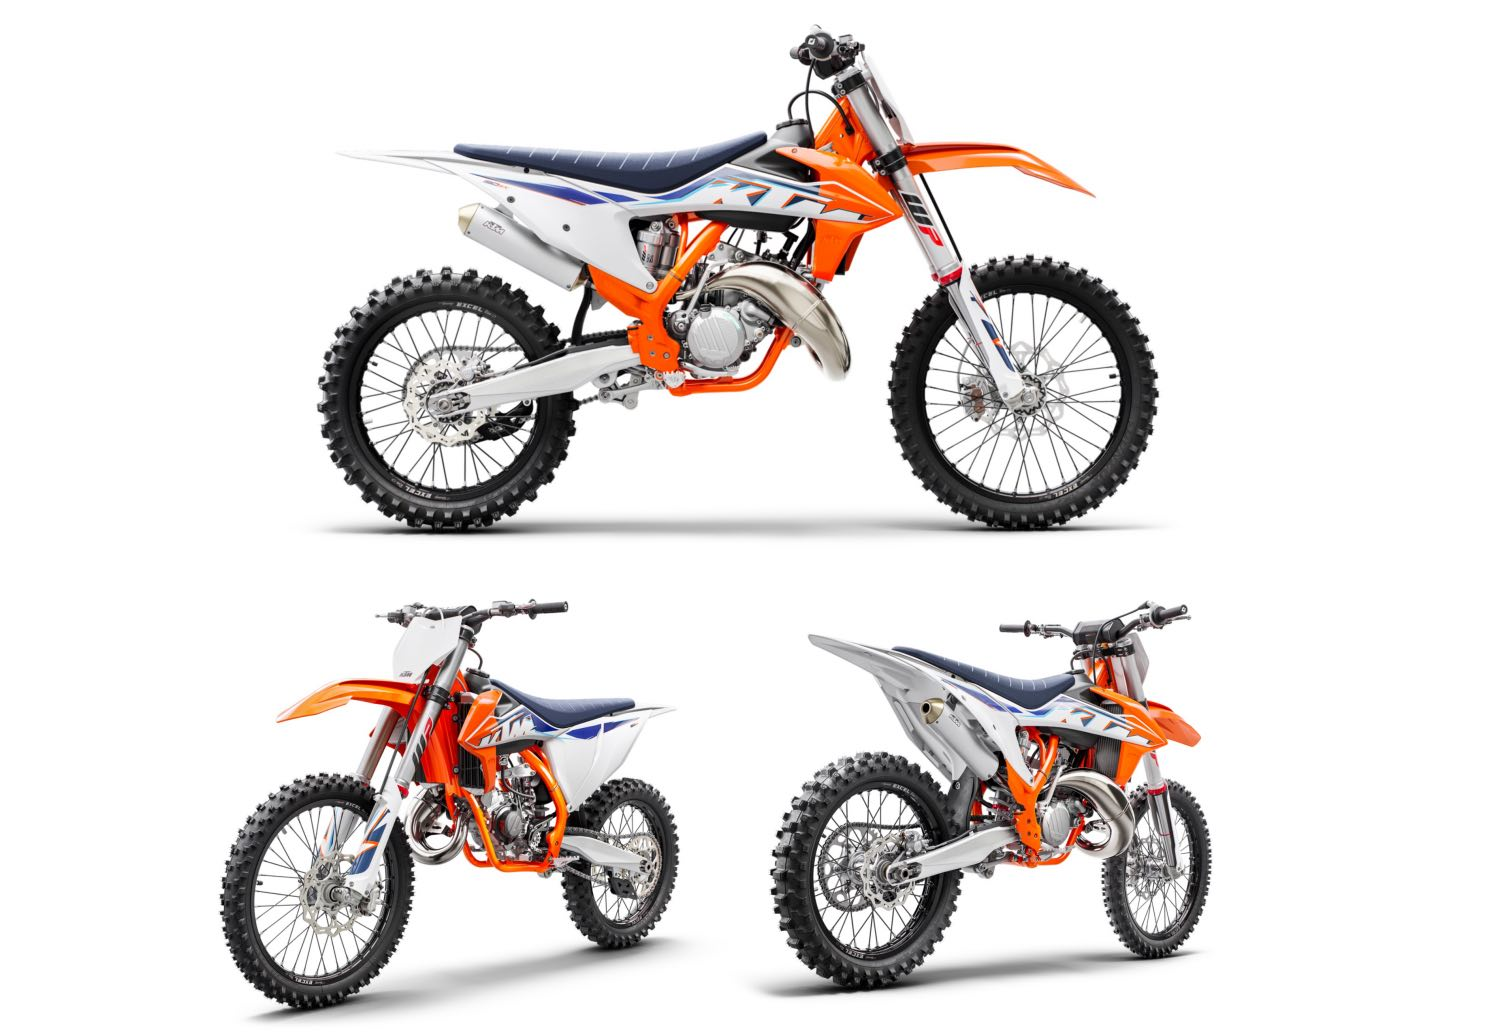 Introducing the 2022 KTM 150 SX